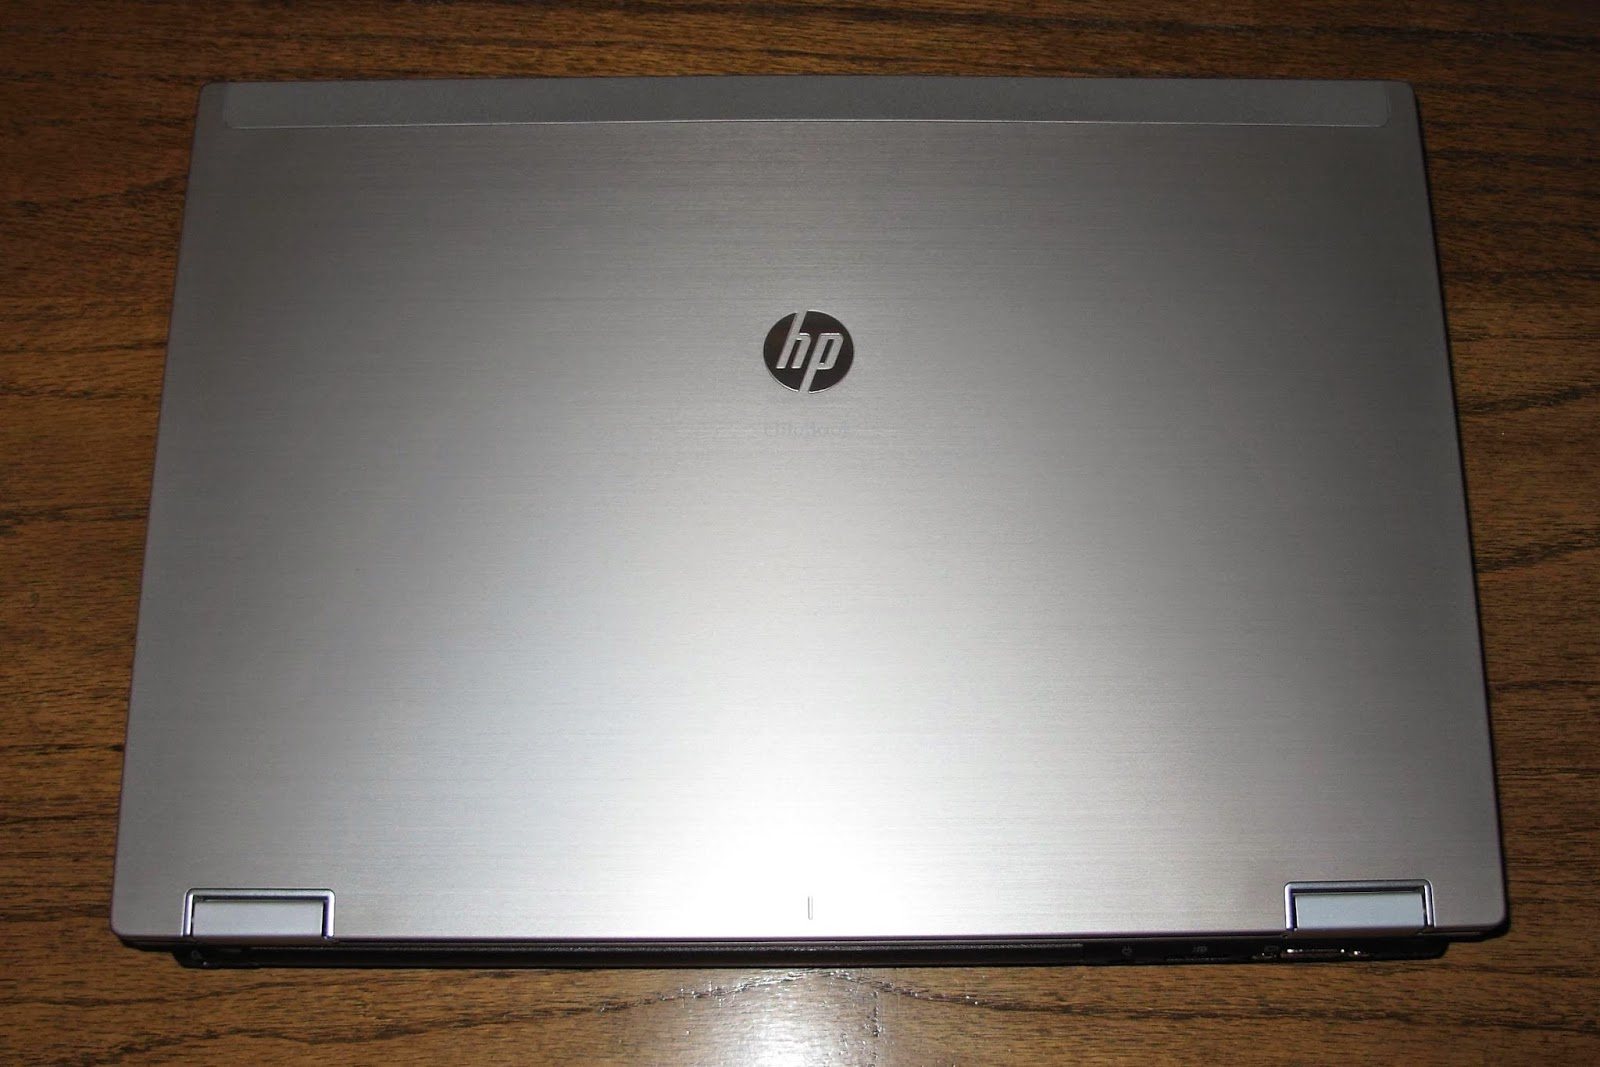 HP ELITEBOOK 8440P BLUETOOTH PERIPHERAL DEVICE DRIVER